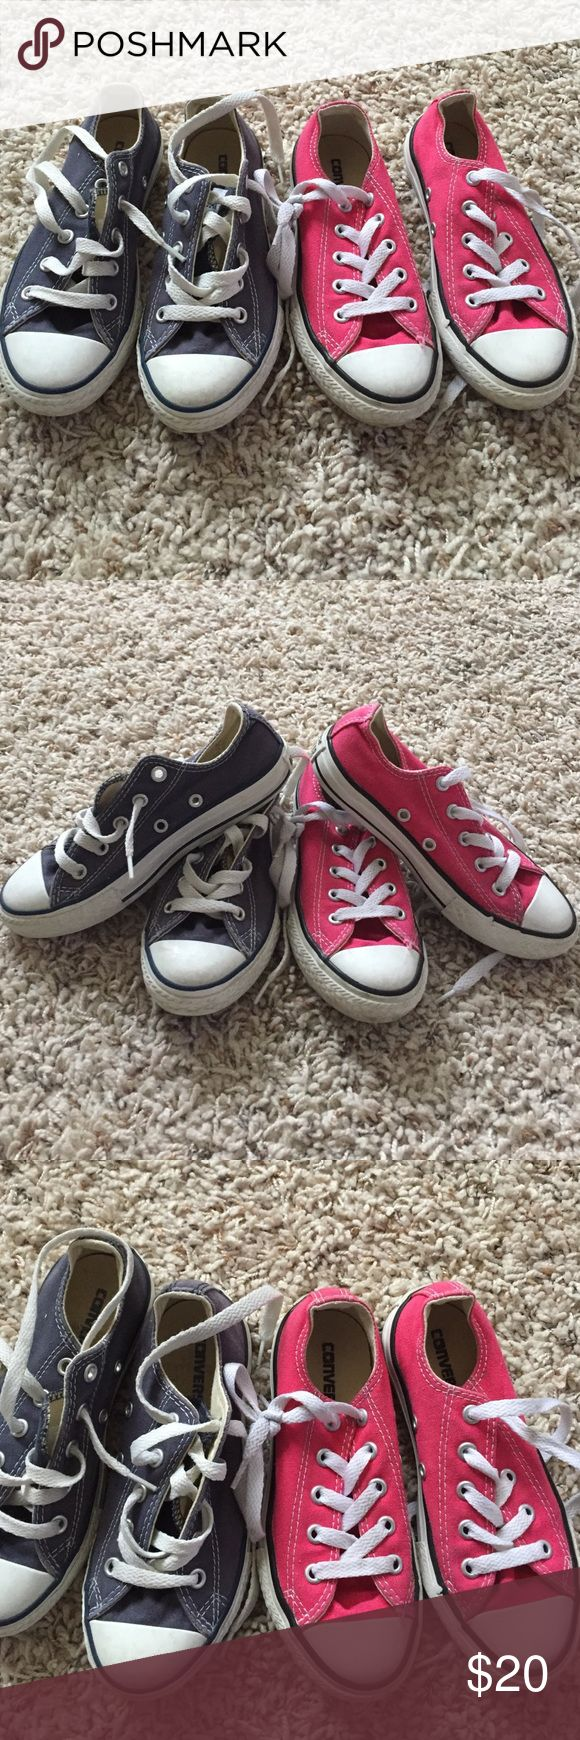 Kids Converse sneaker shoe lot 2 pairs sz 12 12.5 Two pairs of kids Converse sneakers in sizes 12 & 12.5 shows some wear but have a lot of life left in them Converse Shoes Sneakers